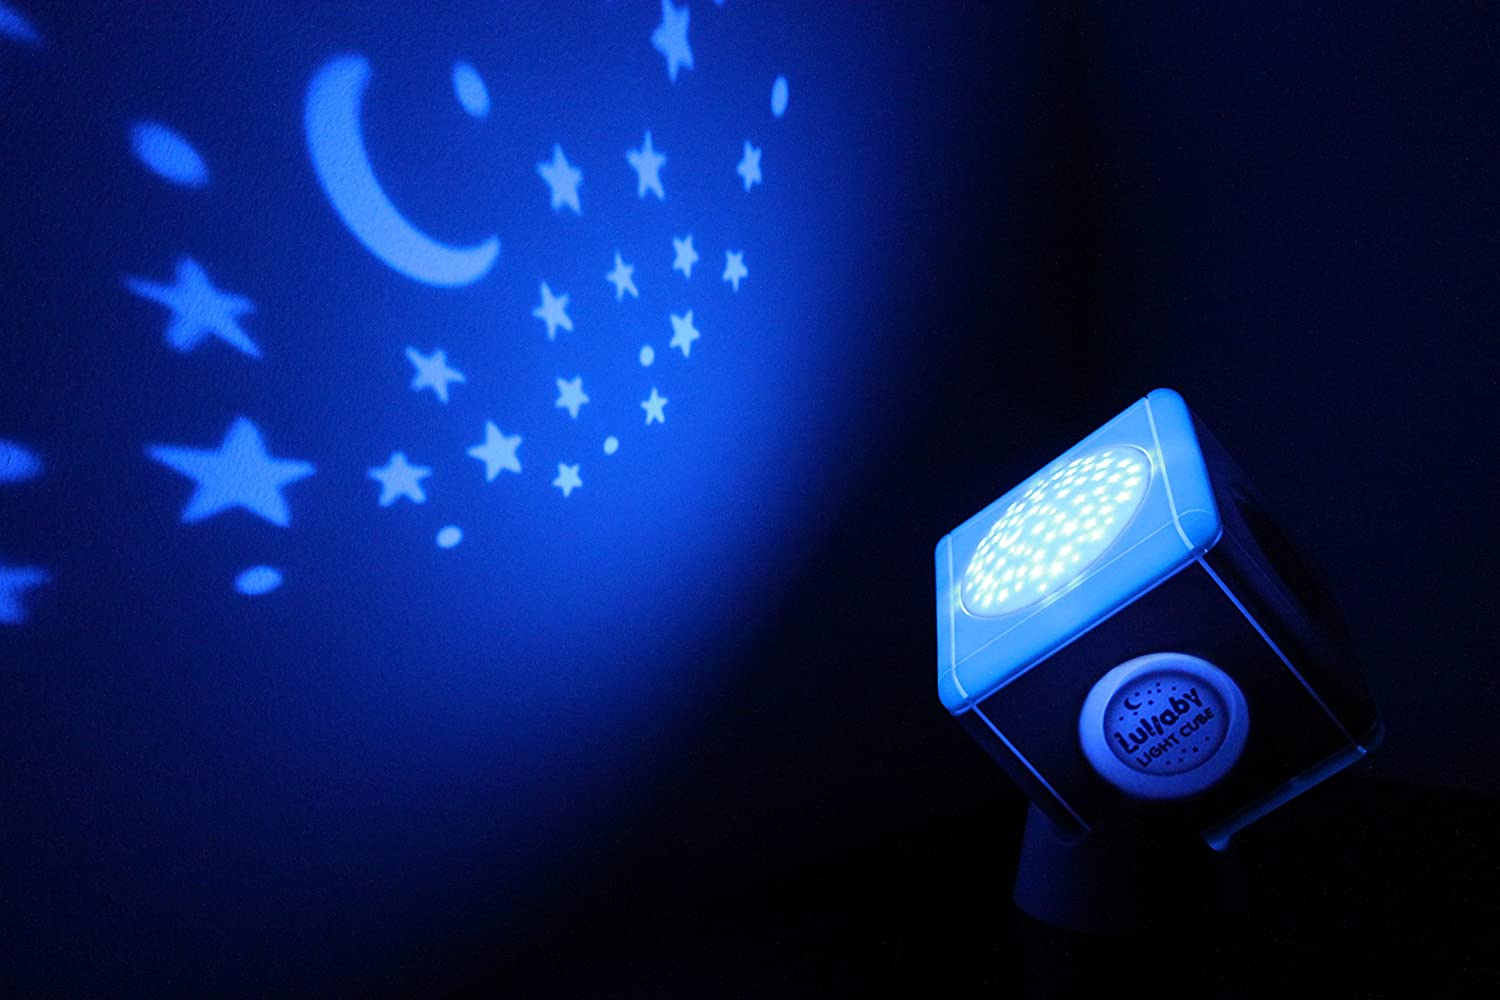 Baby Musical Night Light Star Projector Night Light Reviews